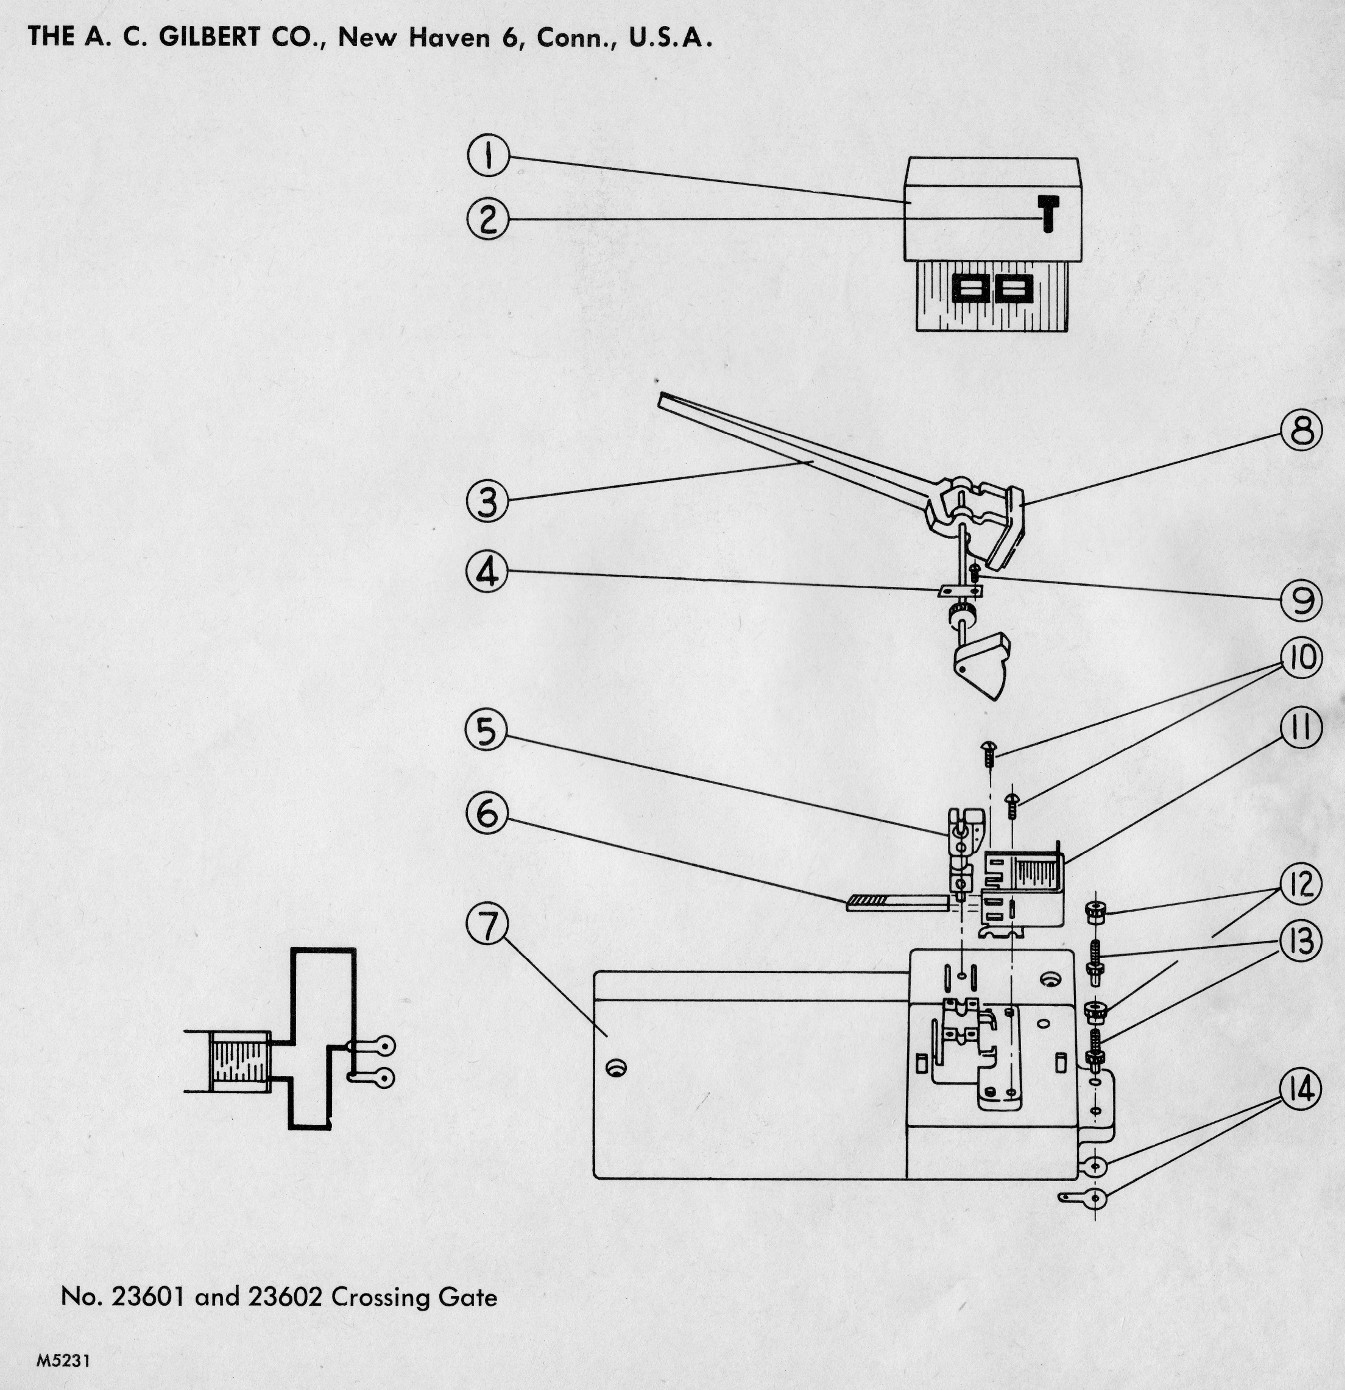 American Flyer Crossing Gate 23601 & 23602 Parts List and